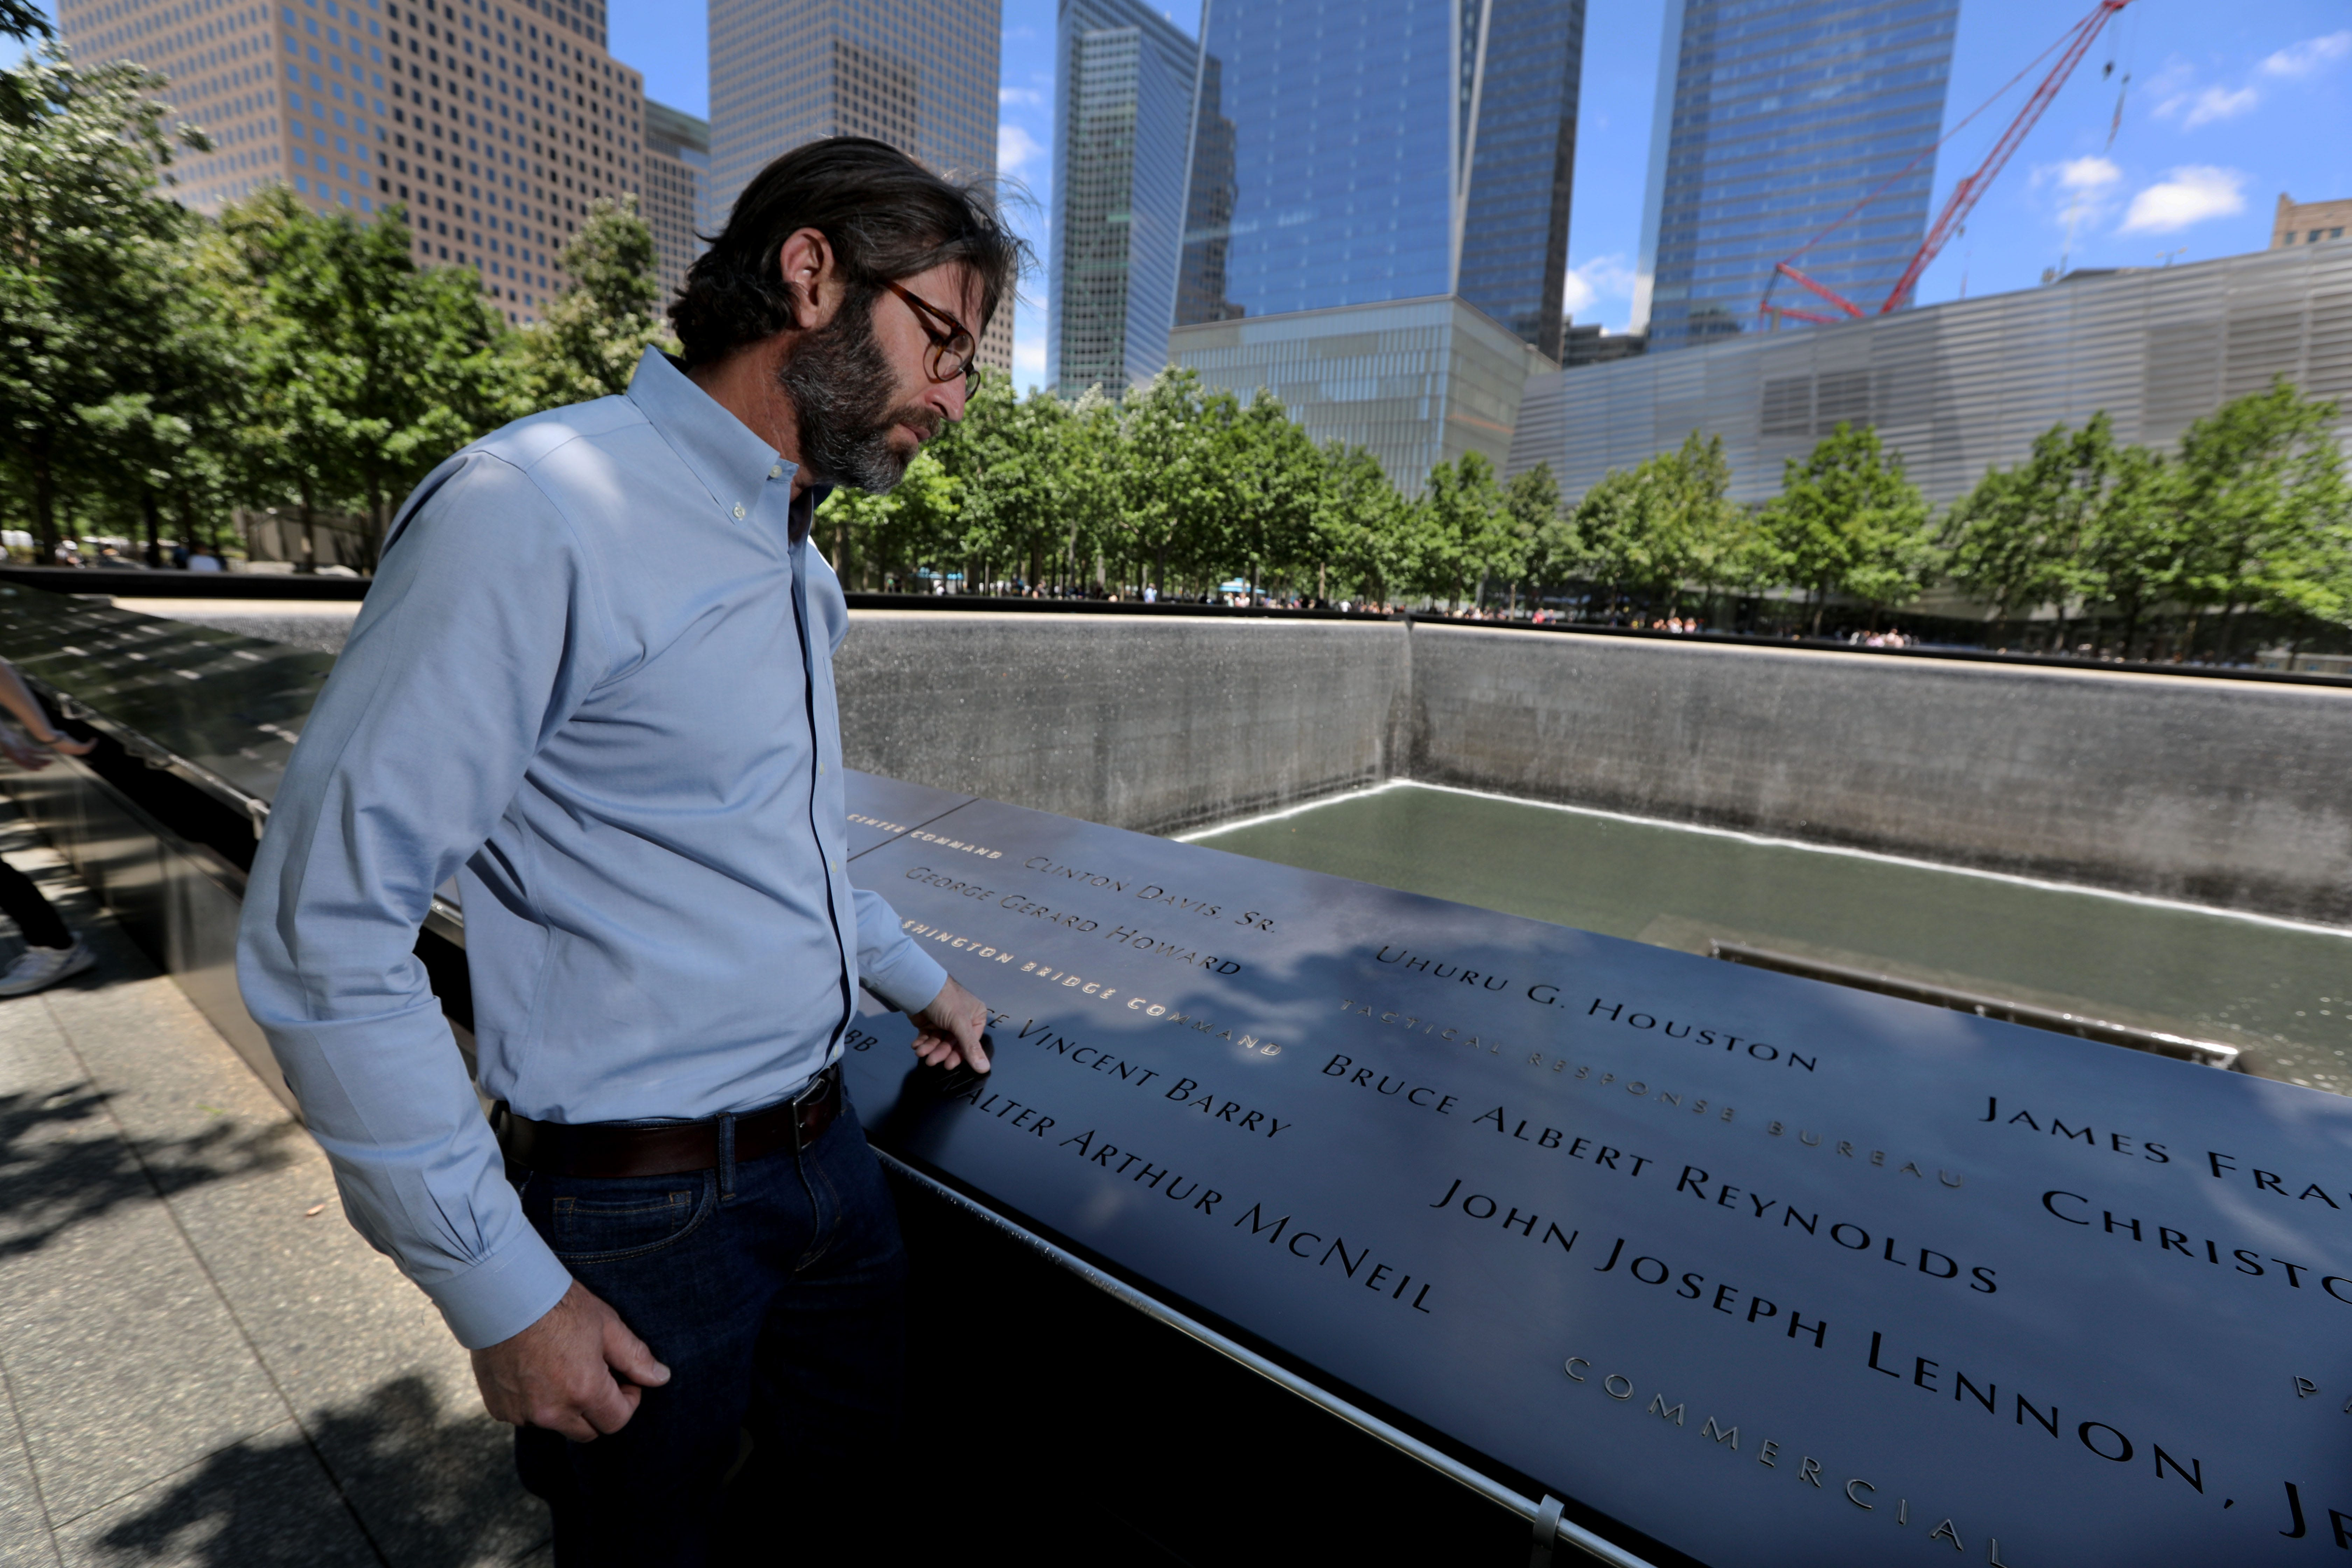 Michael Arad, designer of the 9/11 Memorial at the World Trade Center in Manhattan, spends time at Memorial on June 24, 2021.